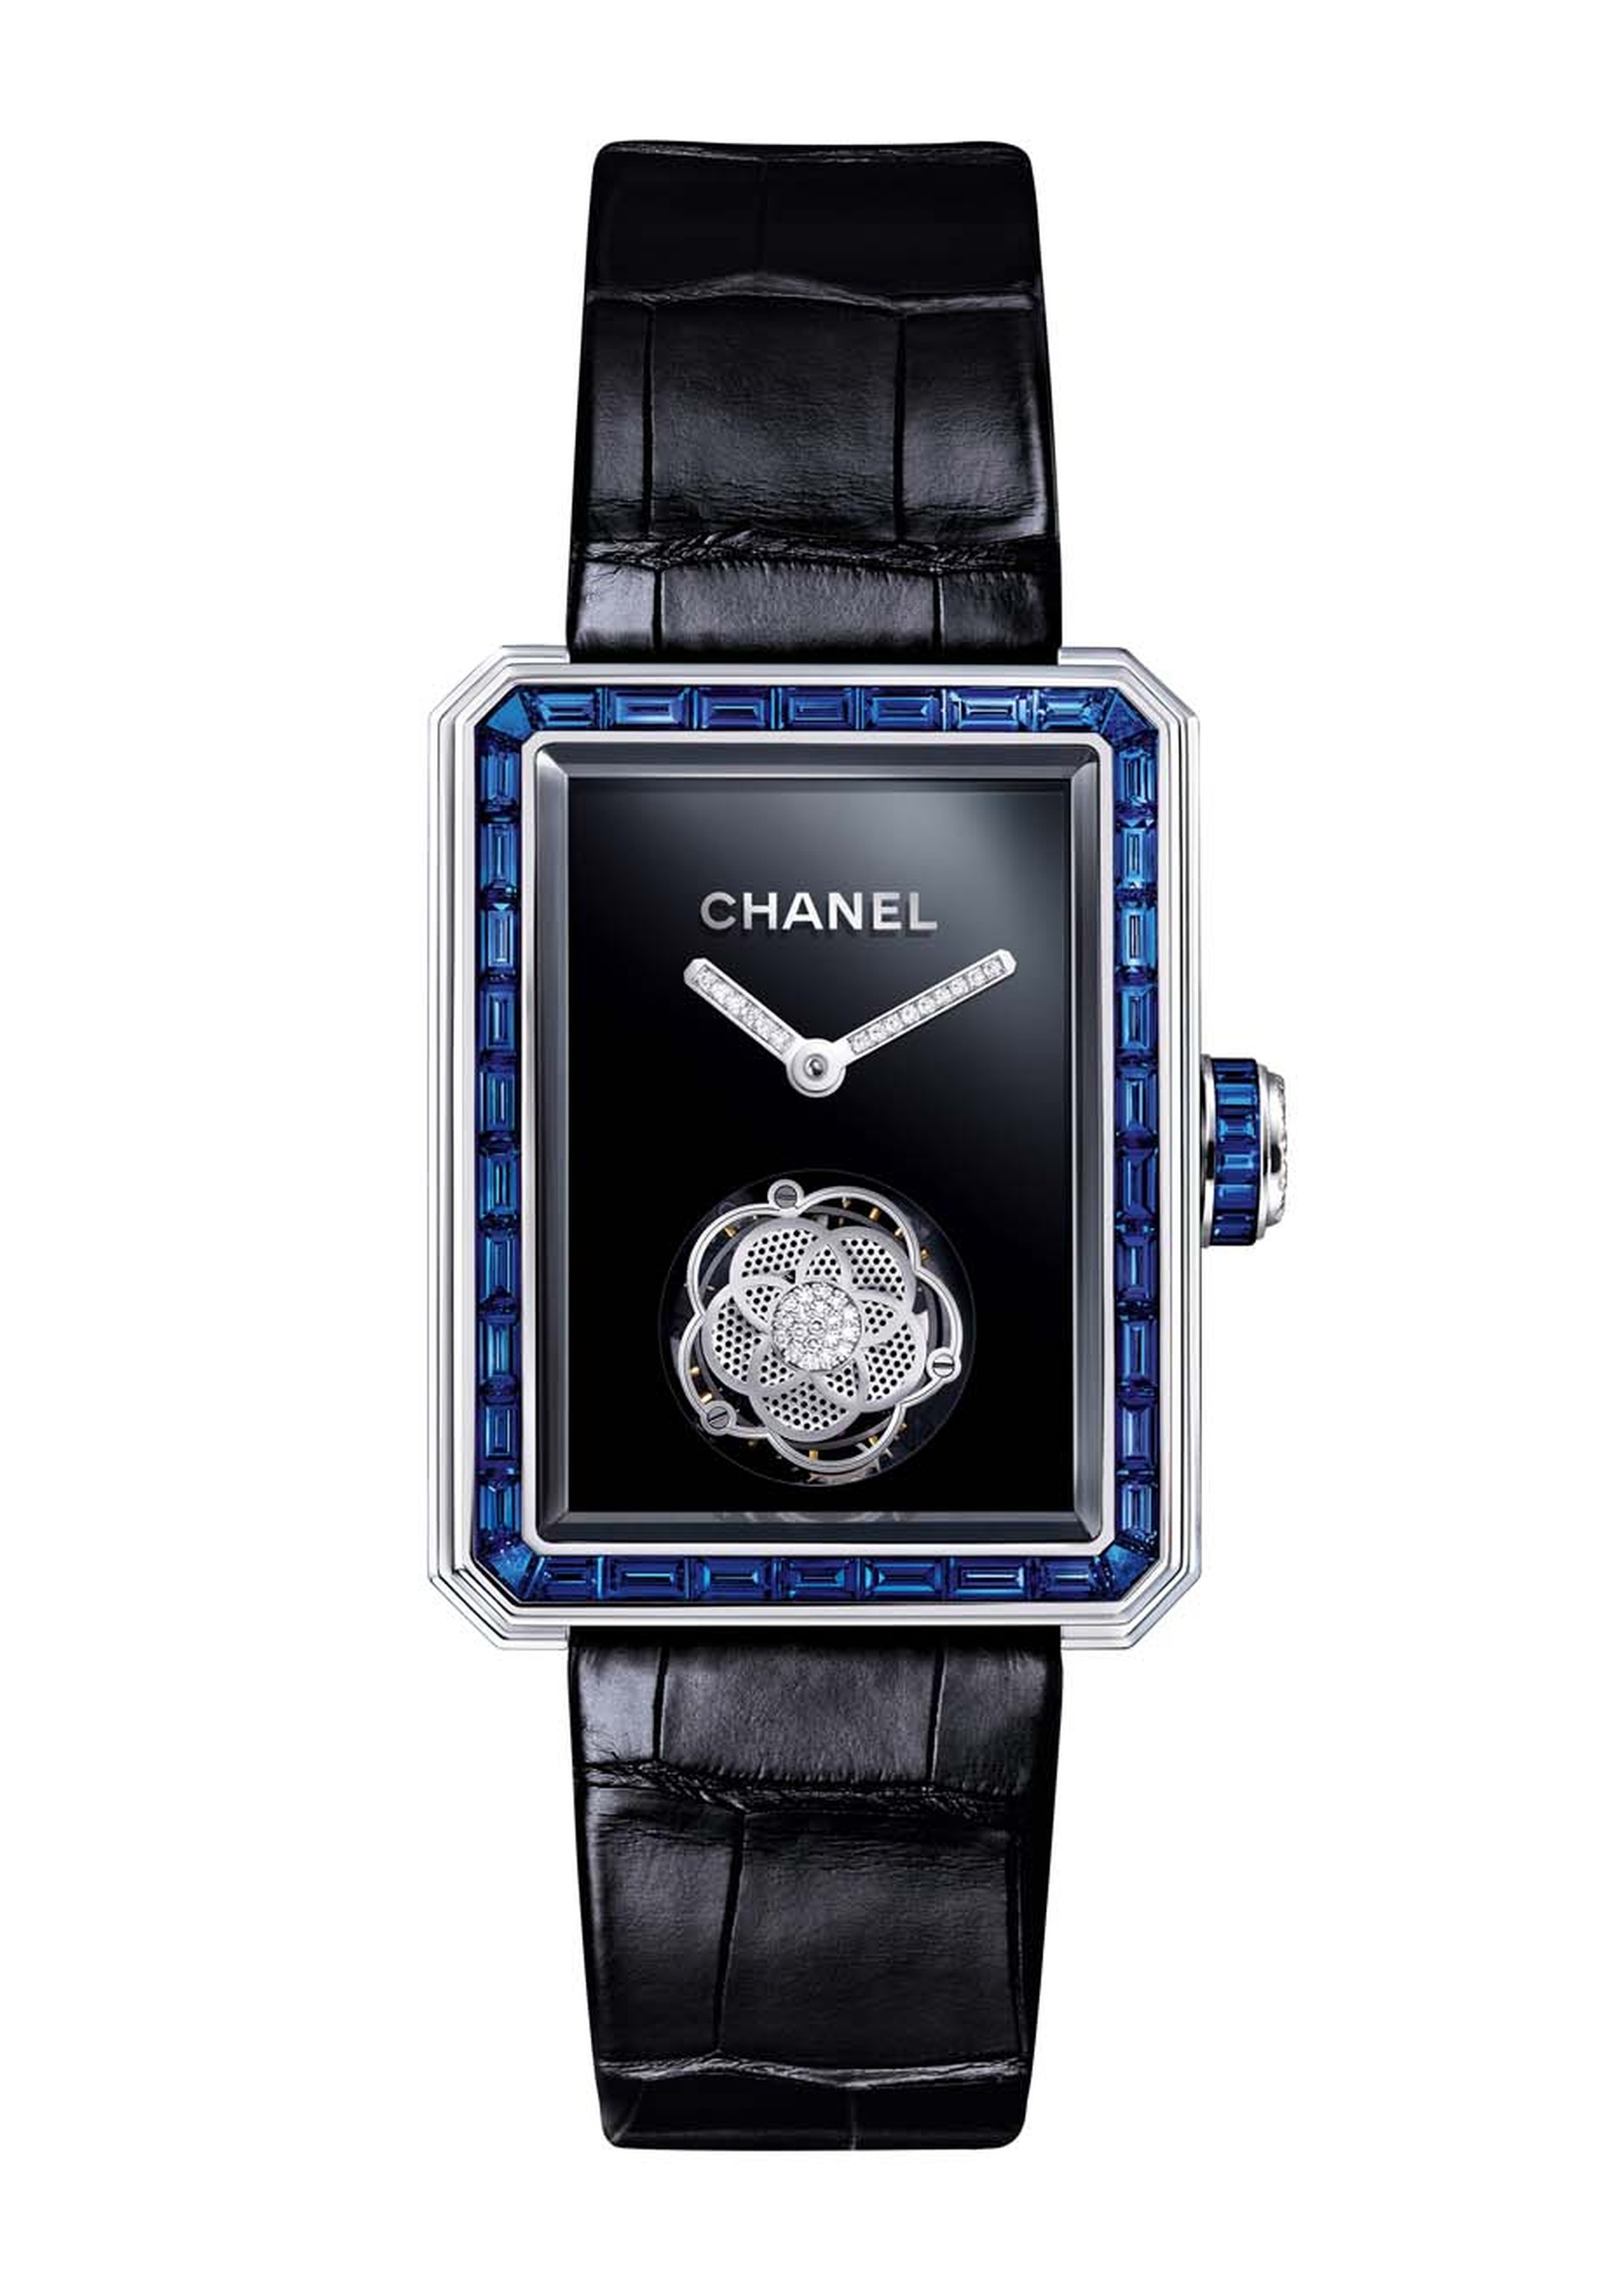 Chanel Première Flying Tourbillon ladies' watch owes its octagonal geometry to the Place Vendôme, just like the stopper of Chanel's No.5 perfume bottle. A stylized camellia flower twirls with the tourbillon while intense blue sapphires grace the white gol